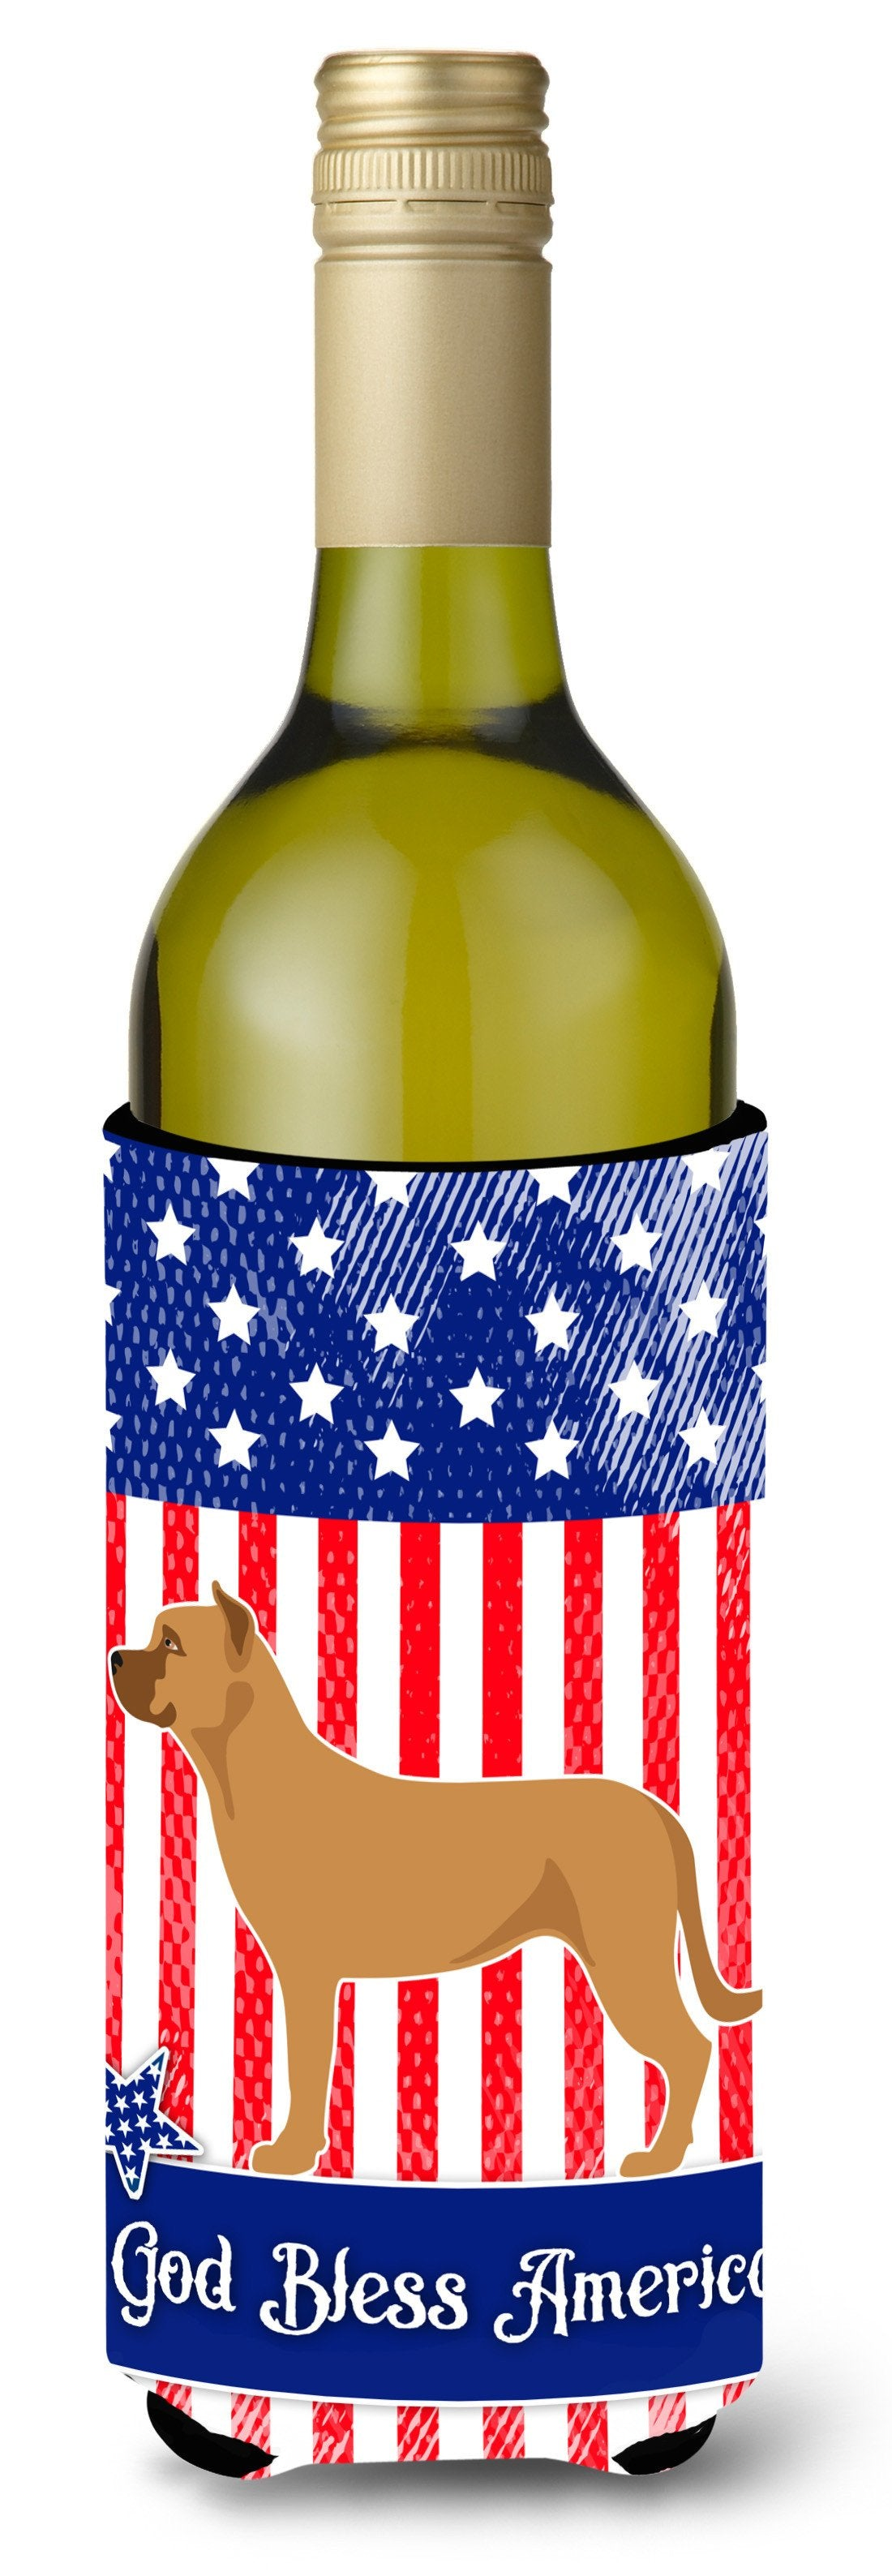 Alano Espanol Spanish Bulldog American Wine Bottle Beverge Insulator Hugger BB8425LITERK by Caroline's Treasures